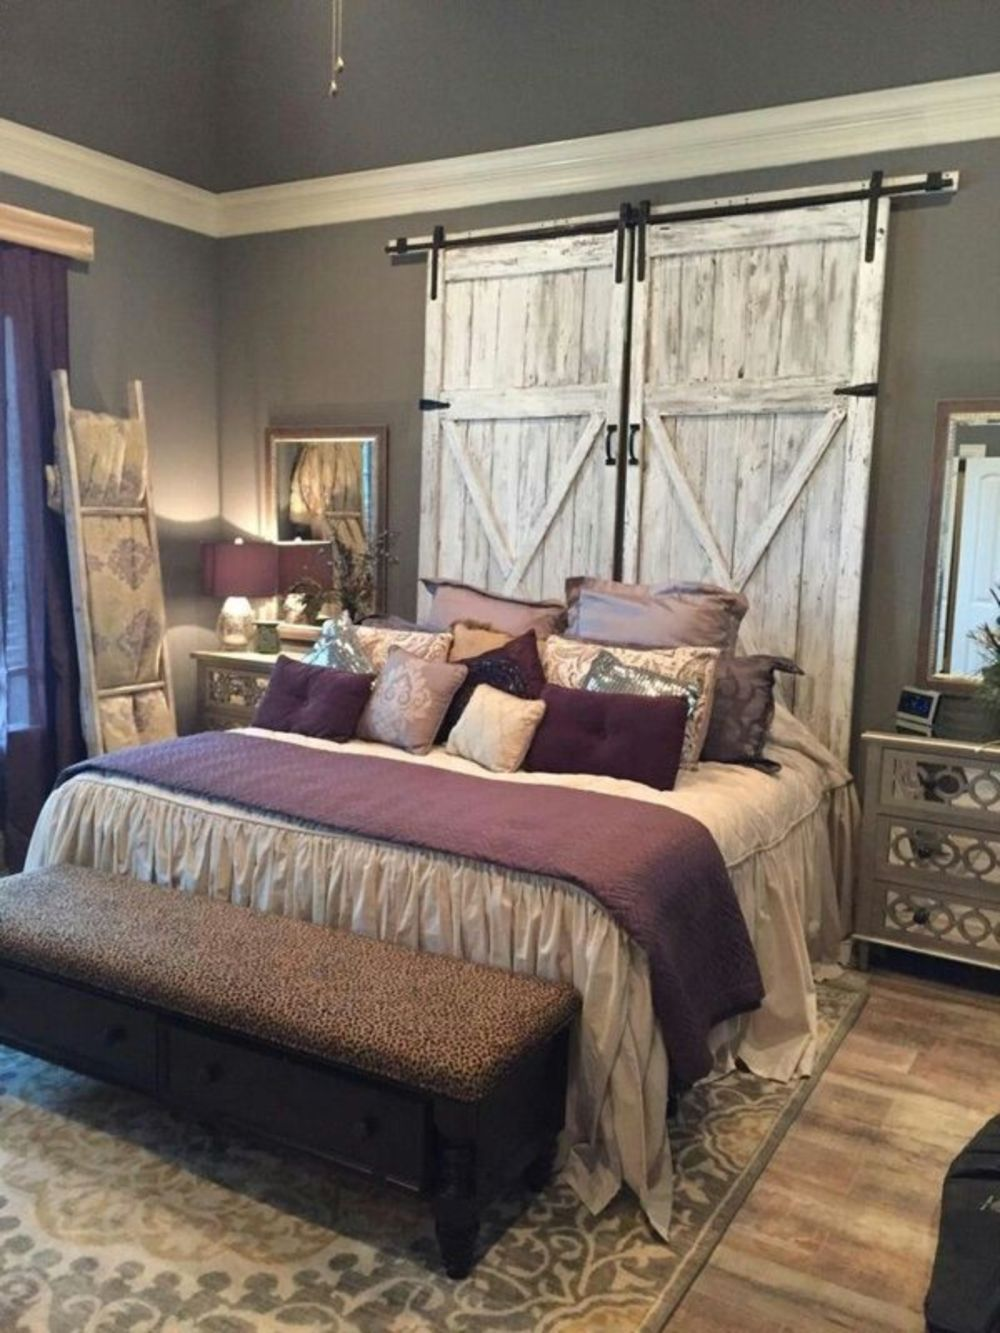 Incredible Modern Country Decoration Ideas 29 Remodel Bedroom